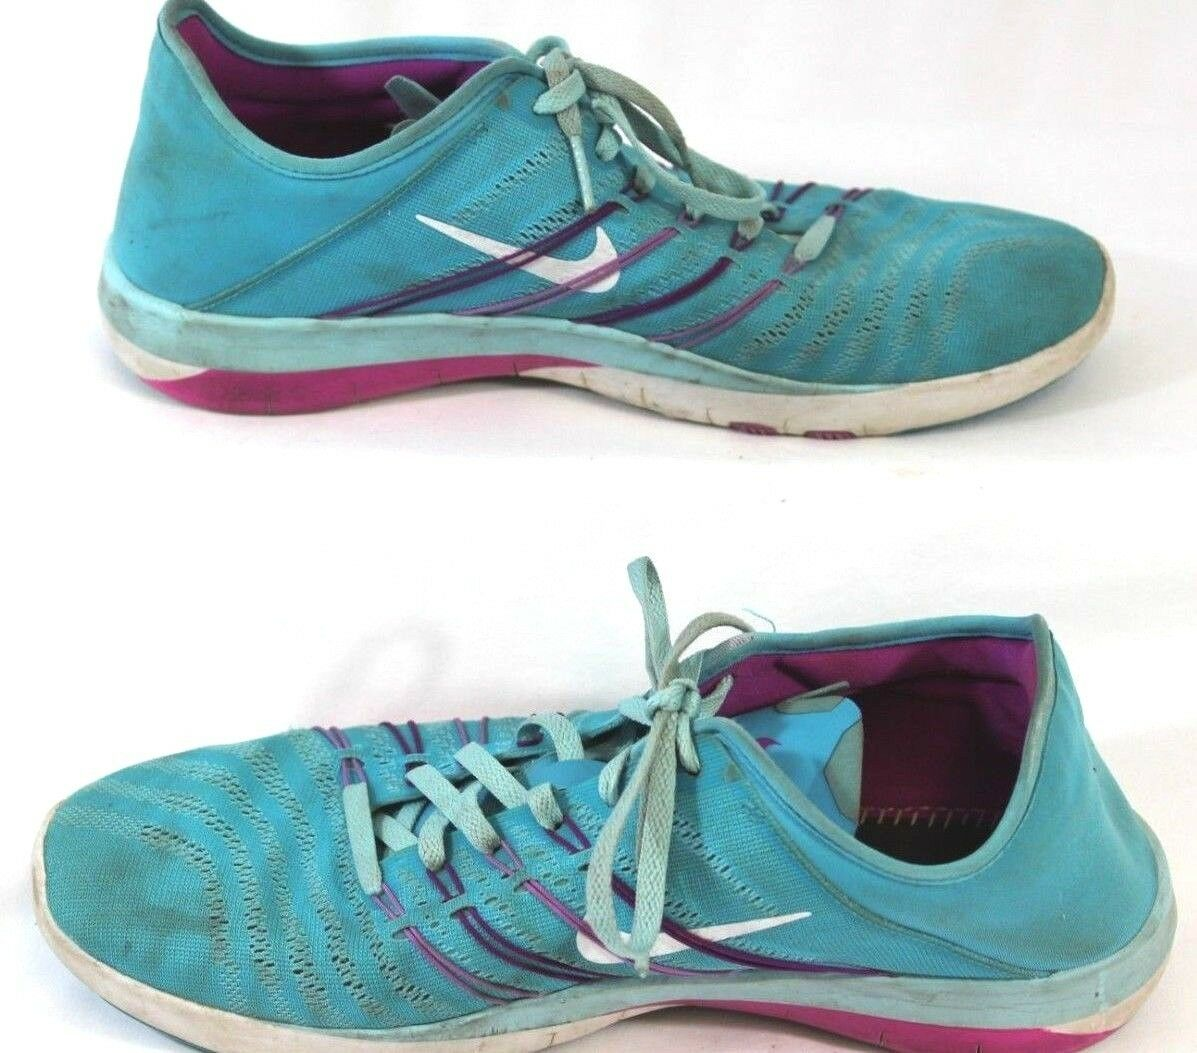 Nike Free TR 6 Running Cross Fit Shoes Size 9 Women's 833413-400